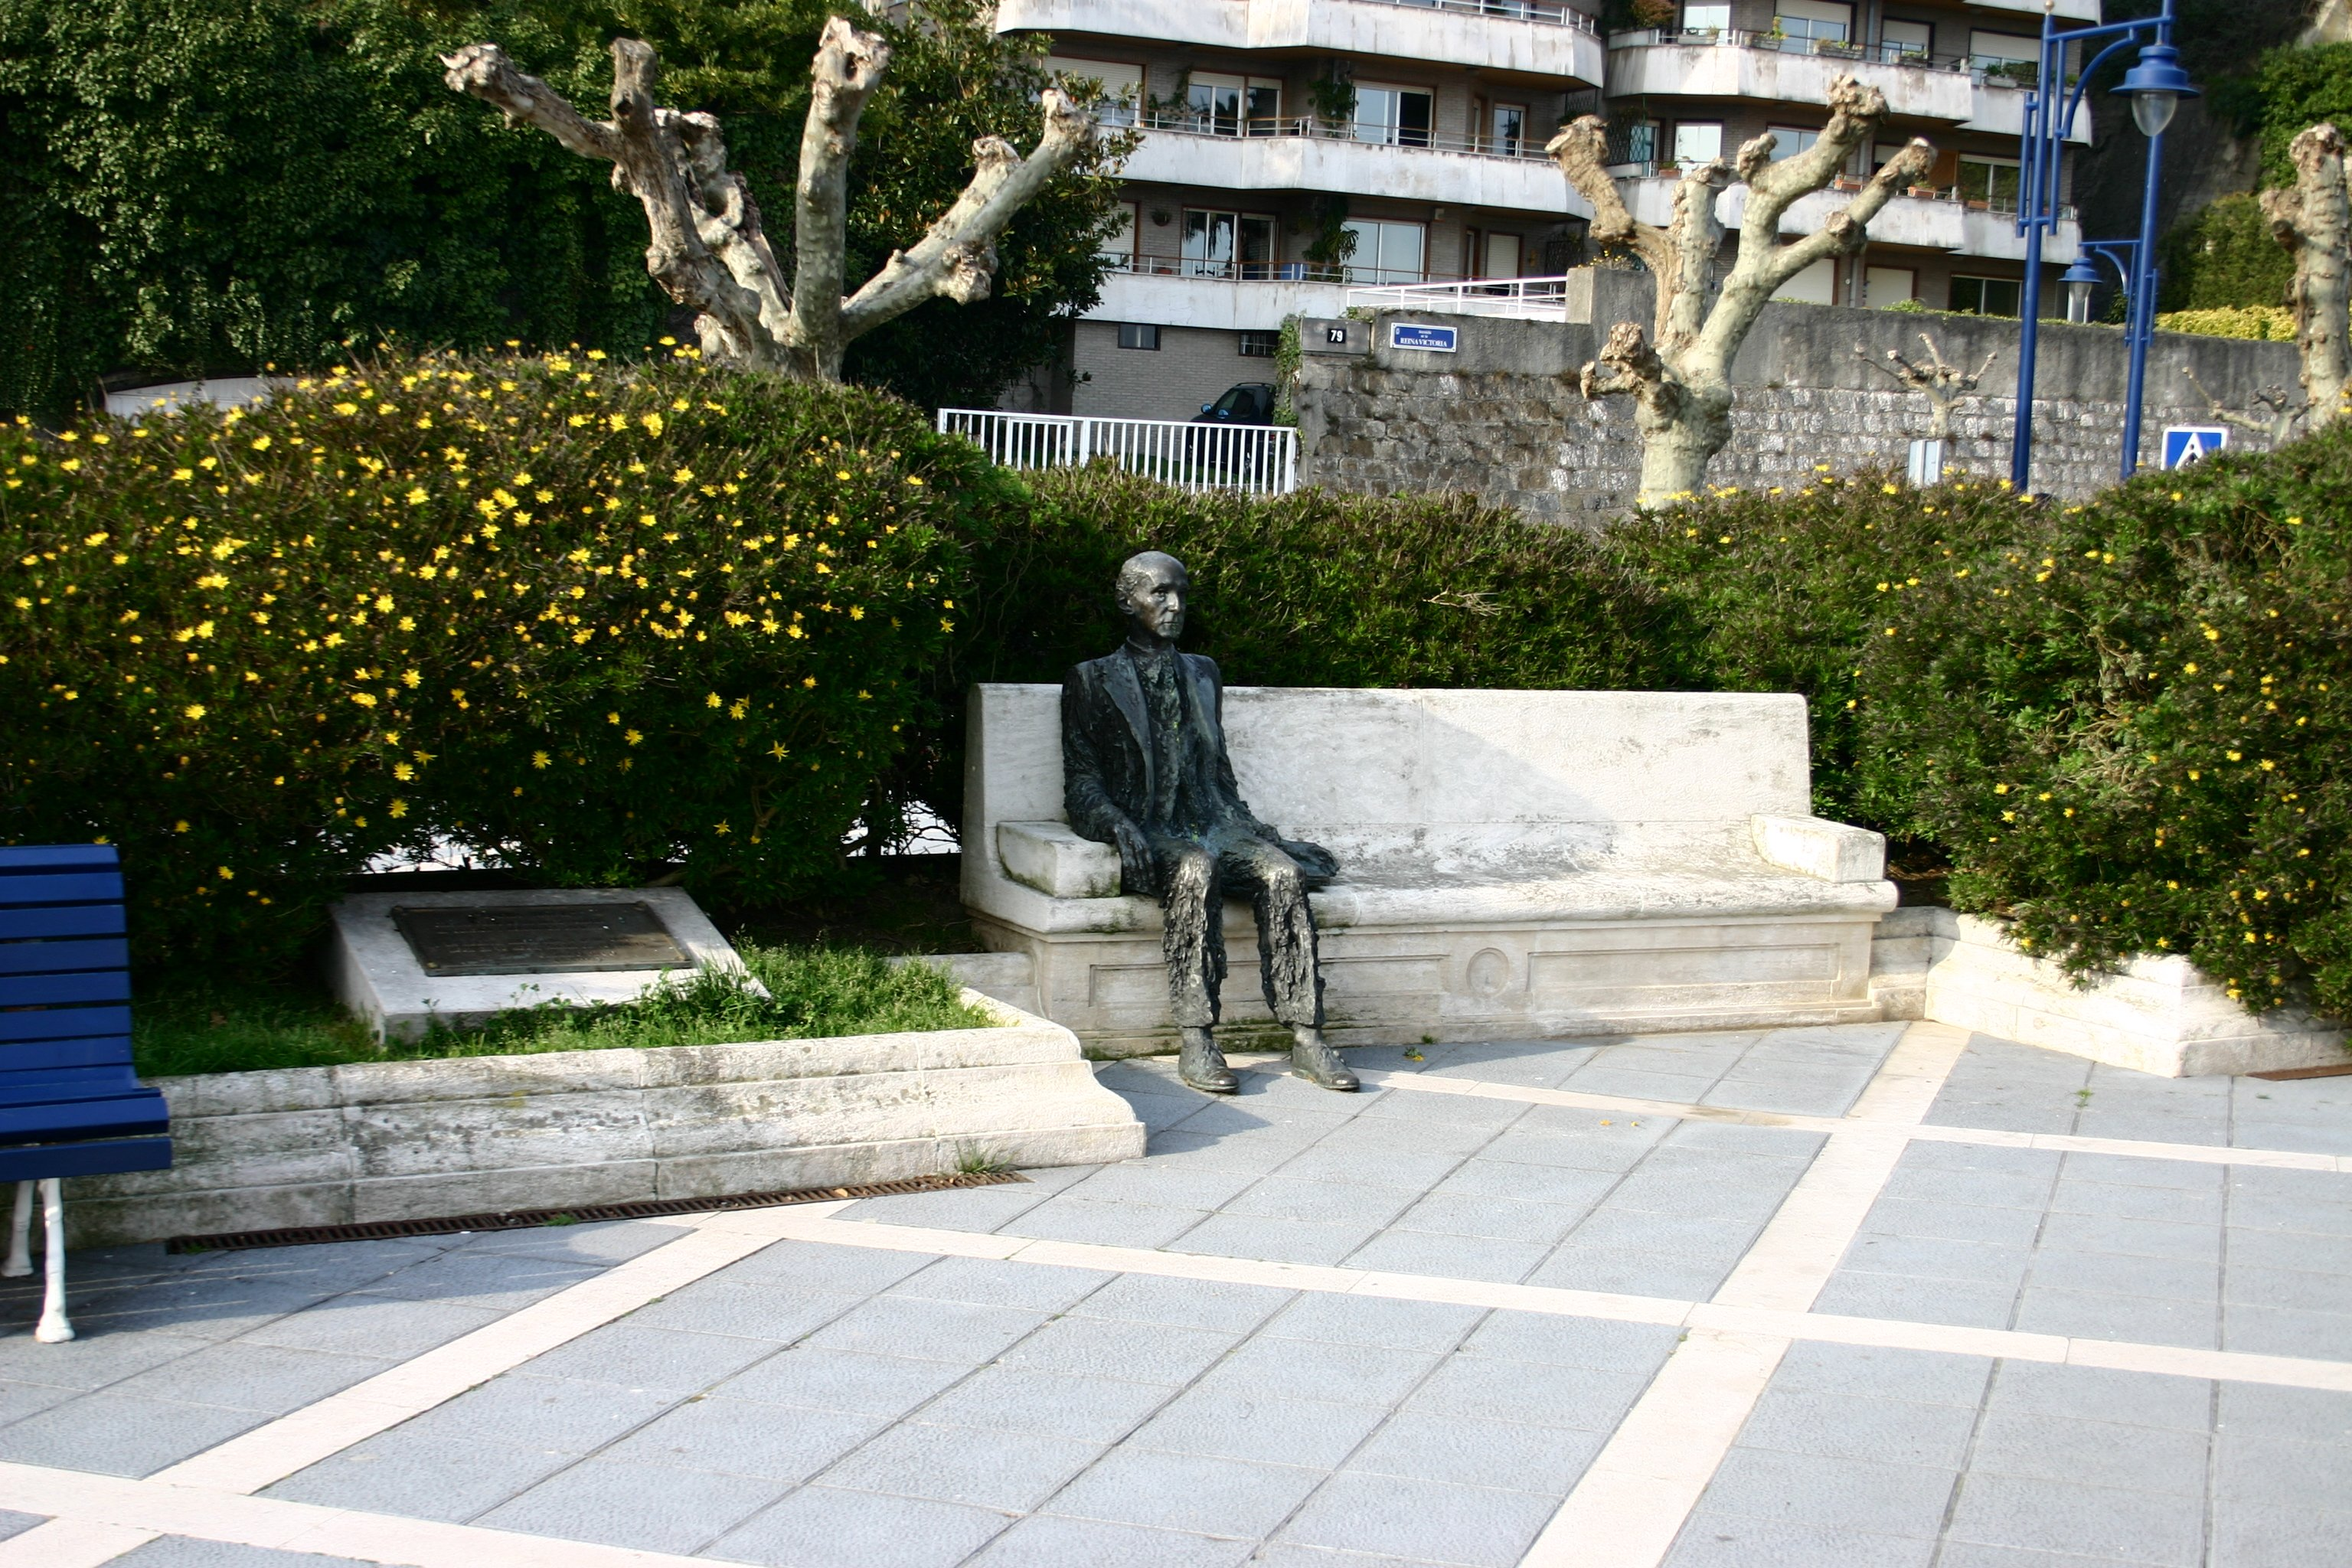 http://upload.wikimedia.org/wikipedia/commons/6/68/Santander.Estatua.Gerardo.Diego.jpg